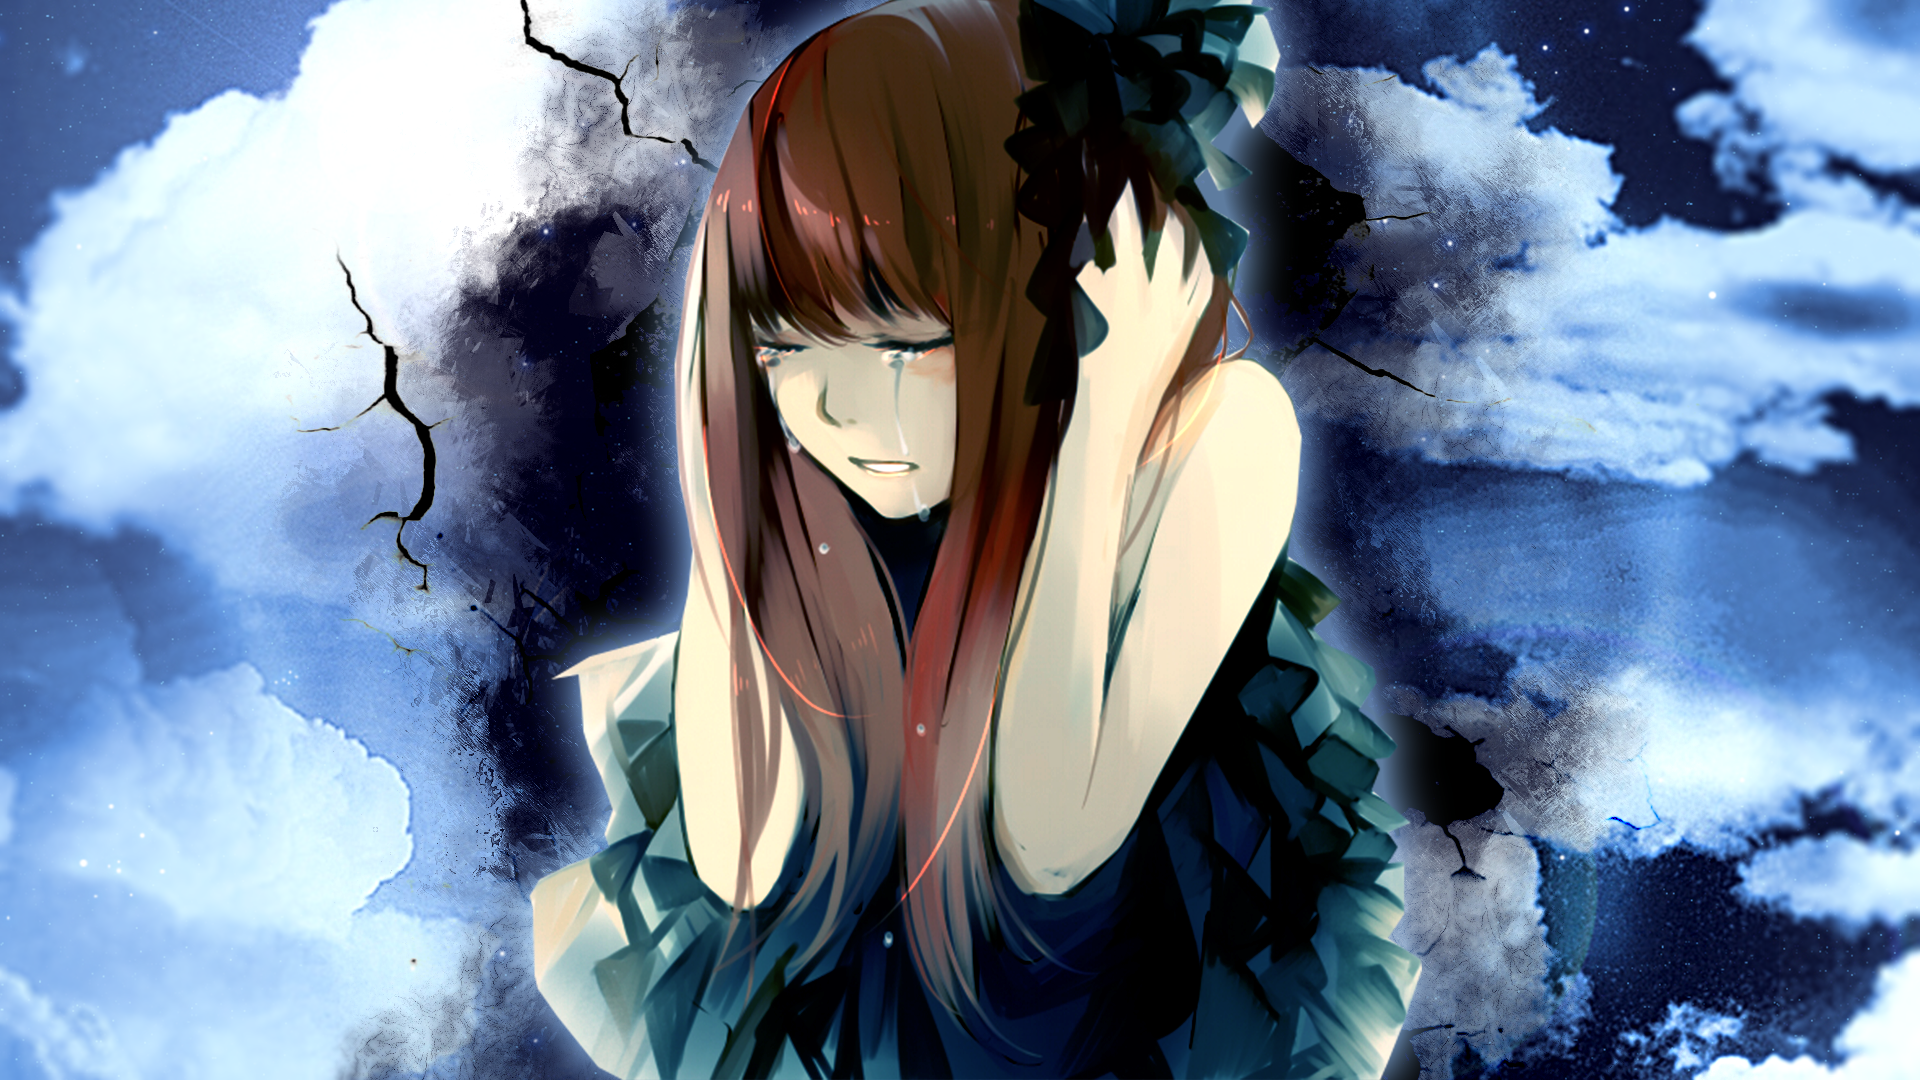 Anime Unknown Crying Girl Sky Blue Wallpaper Shout